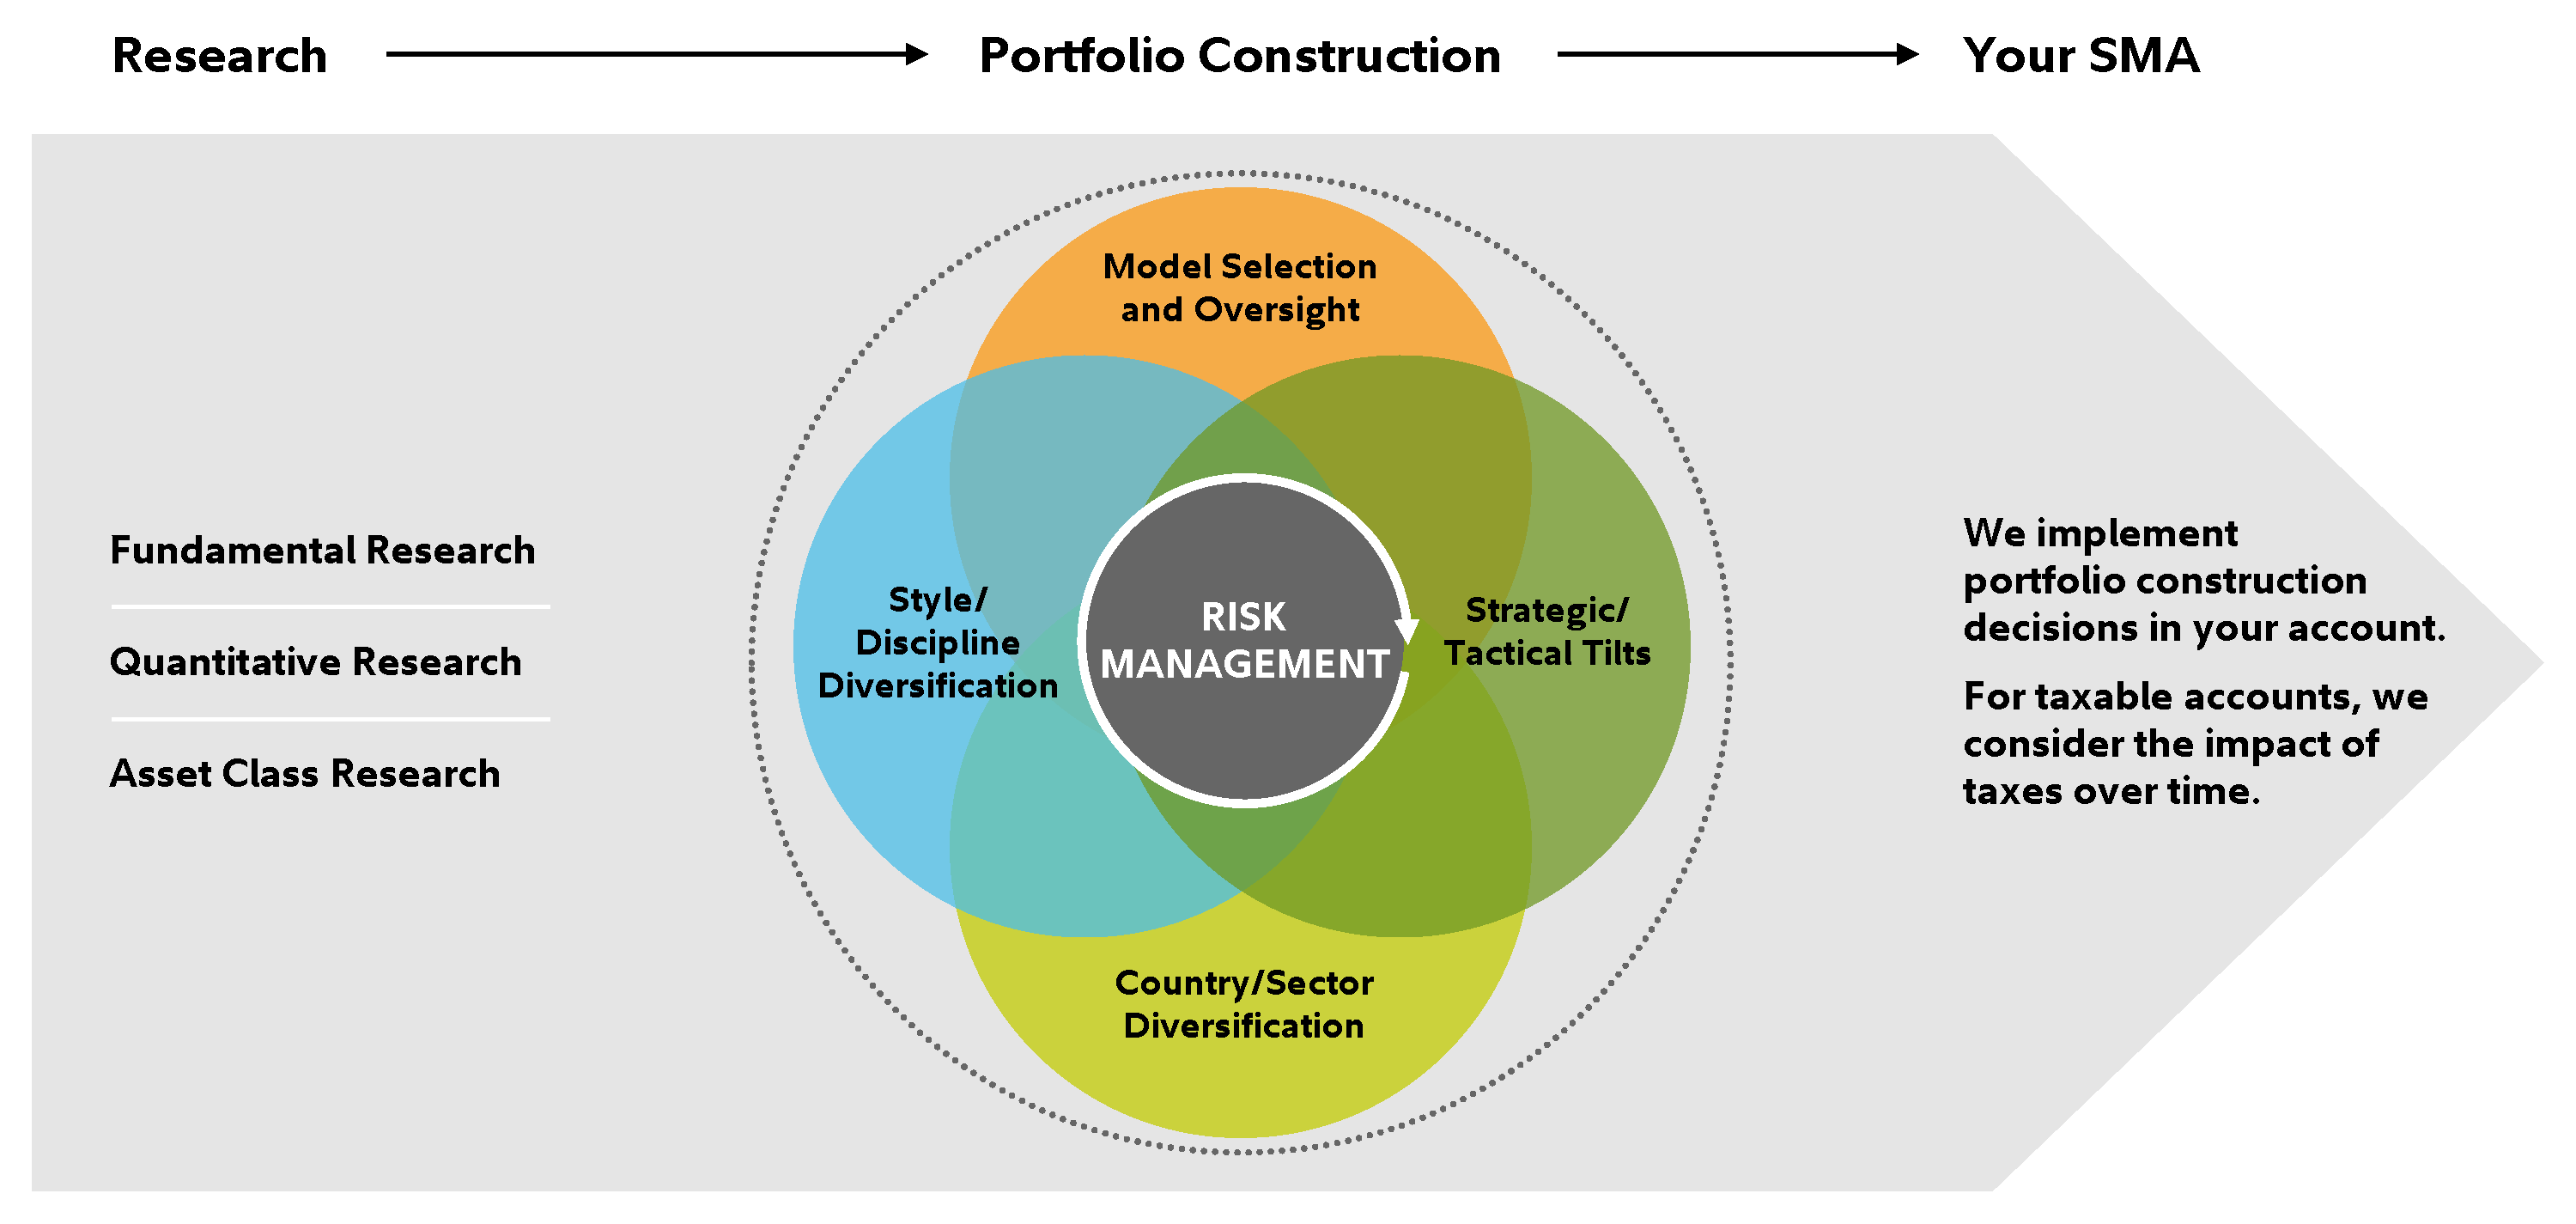 Graphic depicts the elements that go into the portfolio construction of your SMA. We start with a combination of Fundamental Research, Qualitative Research, and Asset Class Research. From there we apply Risk Management, which is a combination of Model selection and Oversight, Style and Discipline Diversification, Country and Sector Diversification, and Strategic and Tactical Tilts. This allows us to implement decisions into client accounts, considering the impact of taxes over time where applicable.